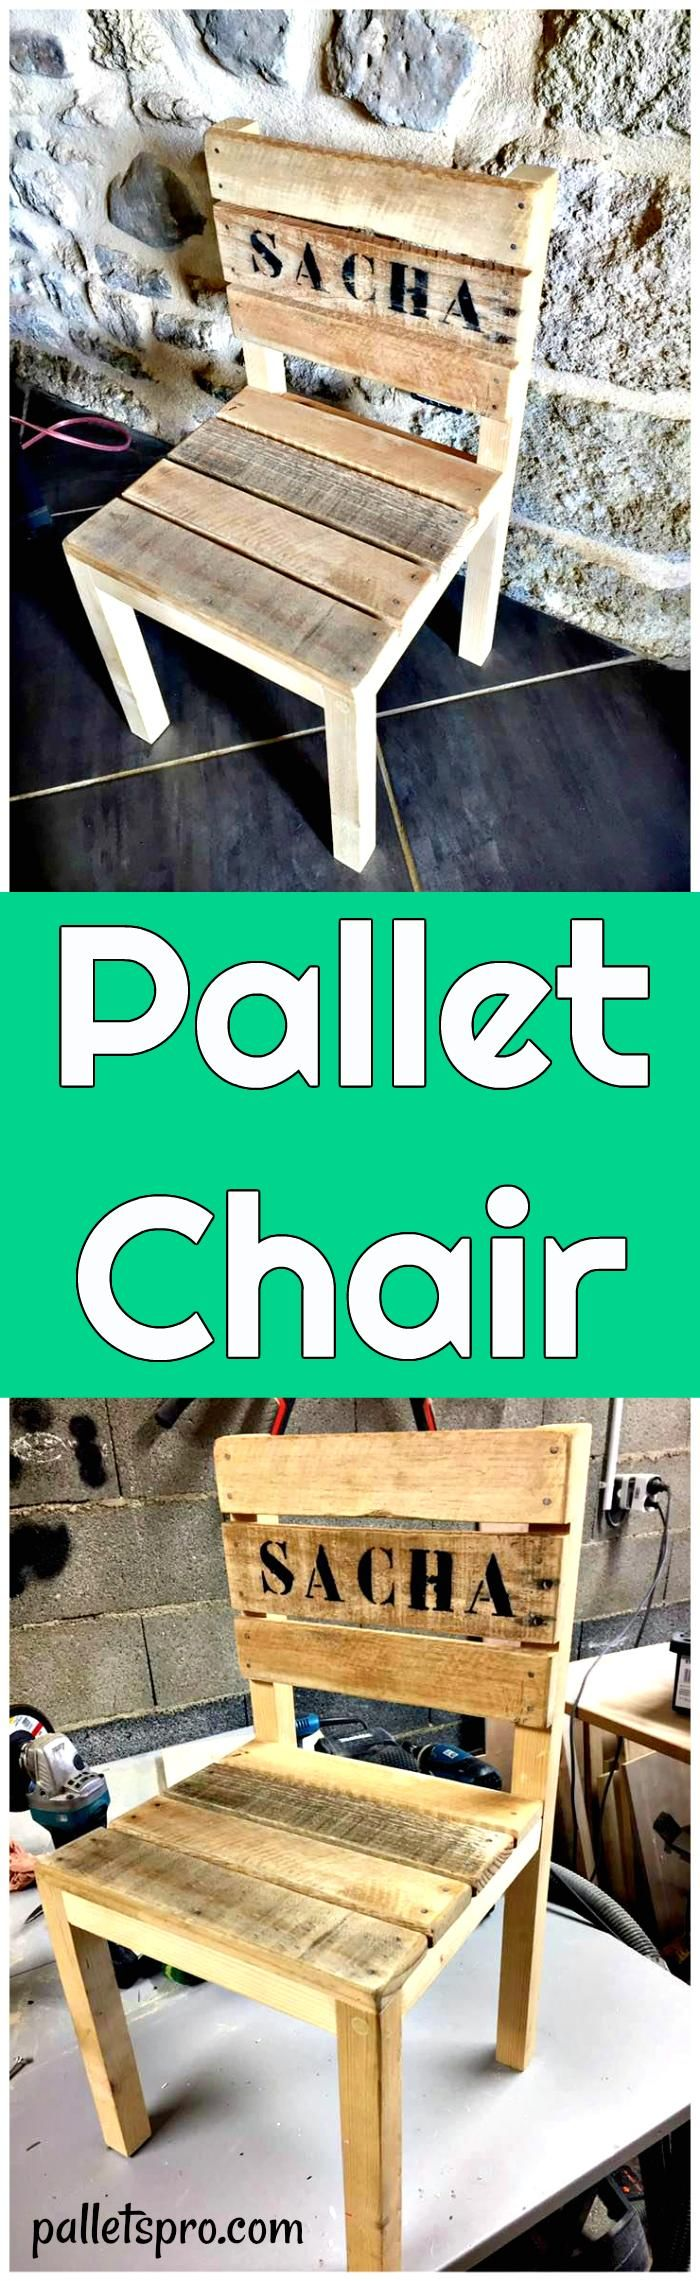 Diy comfortable pallet adirondack chair 101 pallets - Diy Pallet Chair For Kid S